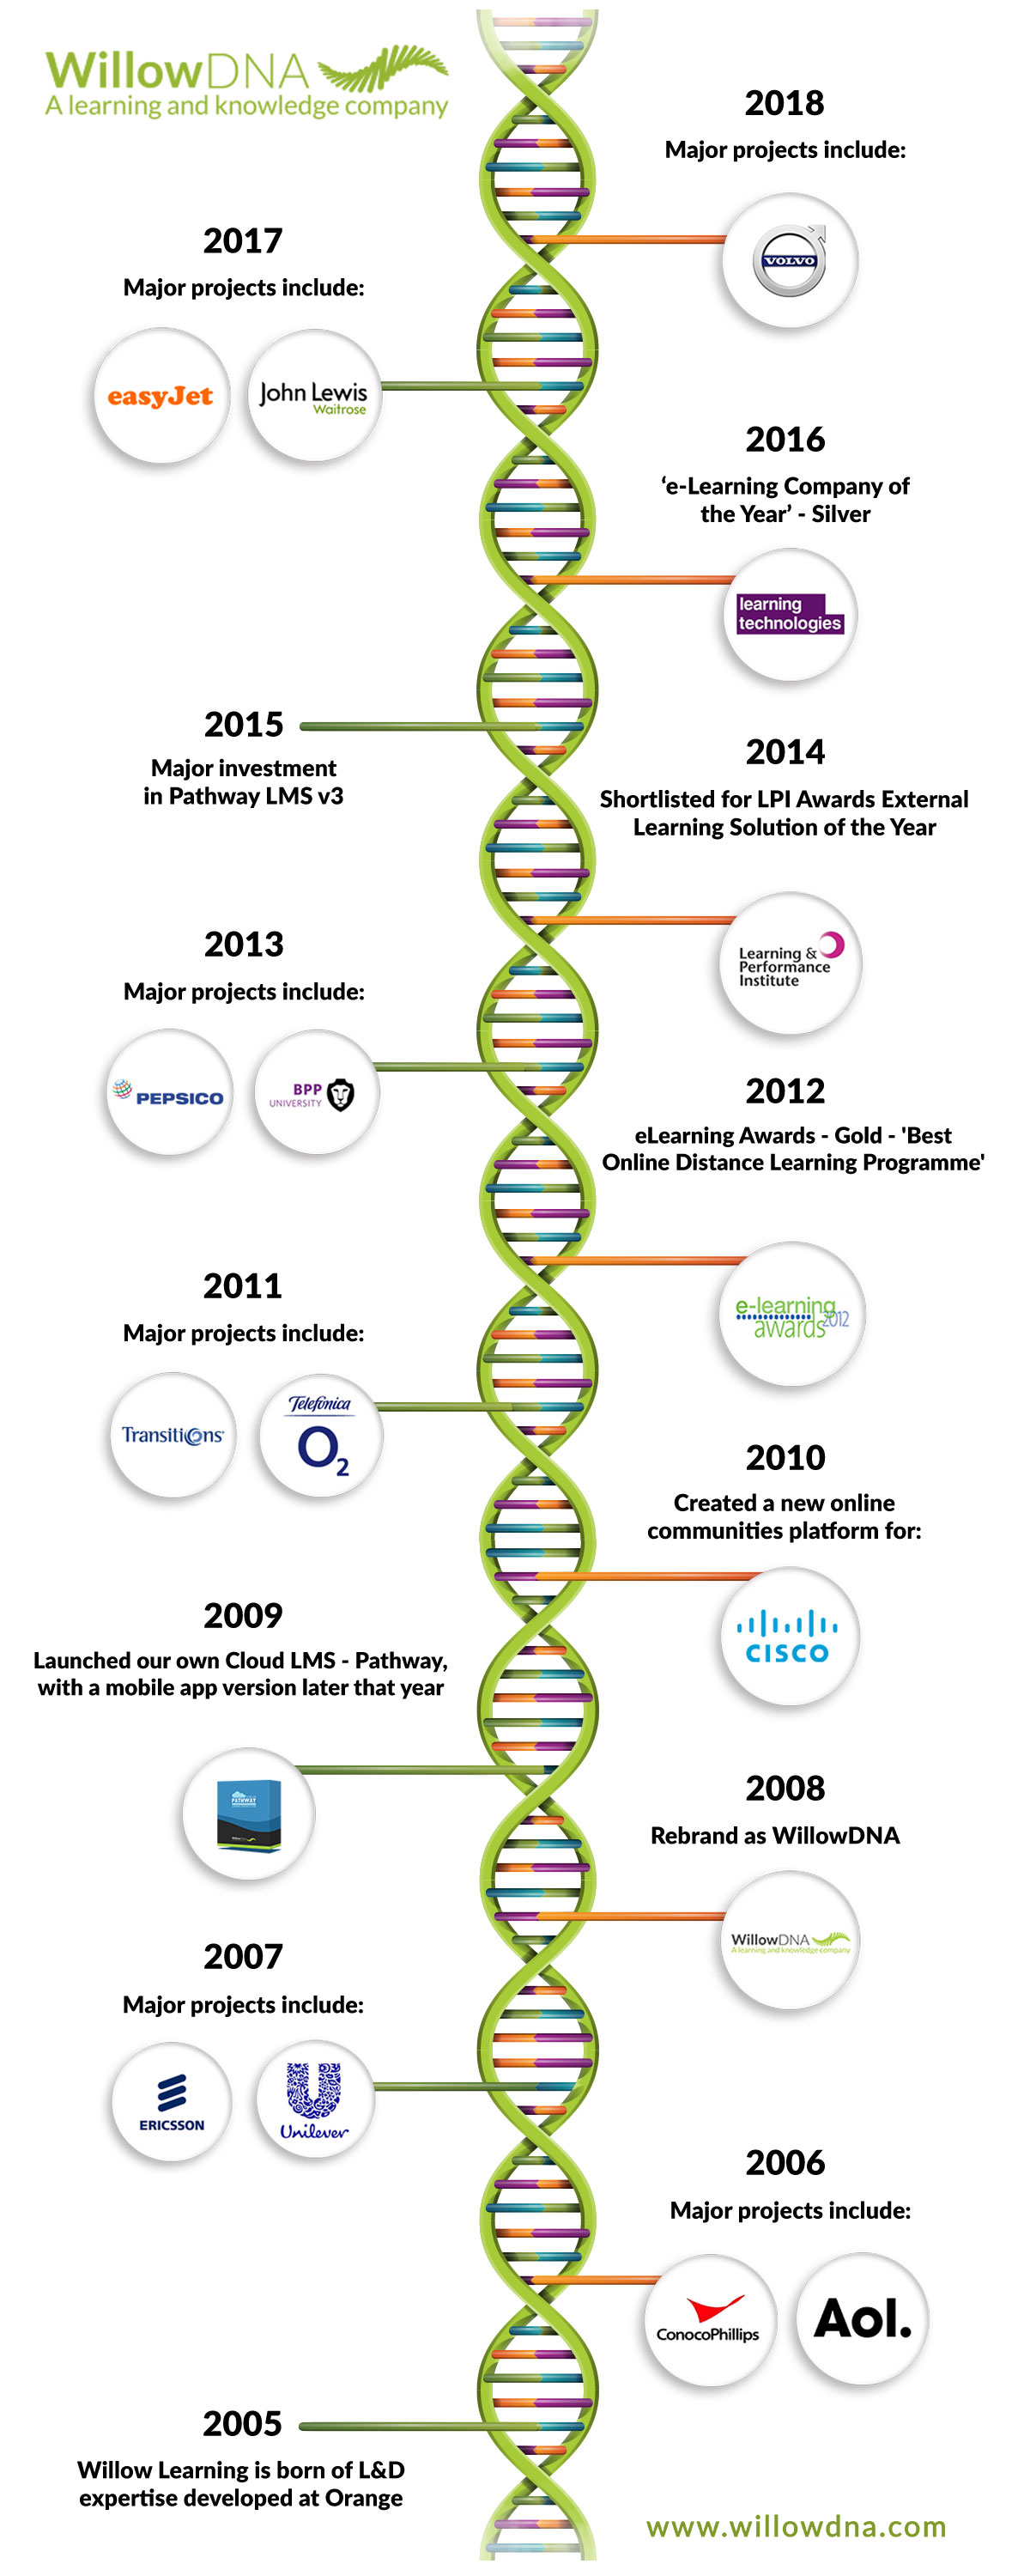 Top e-learning company in the UK - WillowDNA history